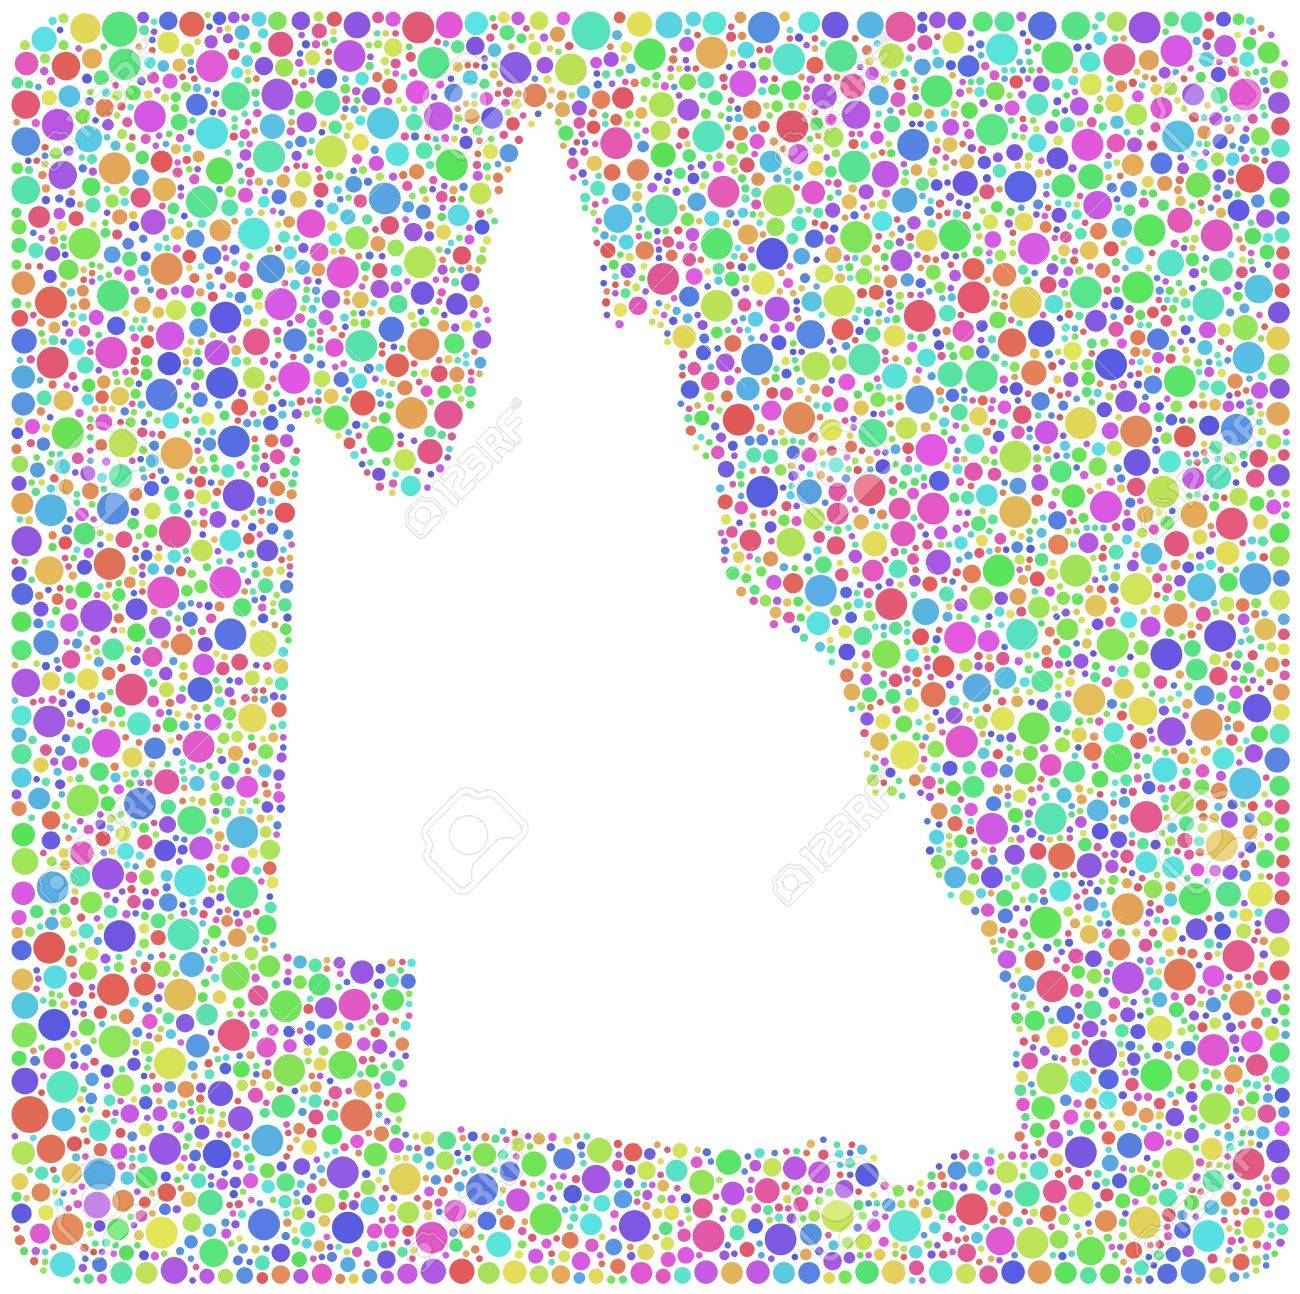 Map Of Queensland Australia.Map Of Queensland Australia Into A Square Icon Mosaic Of